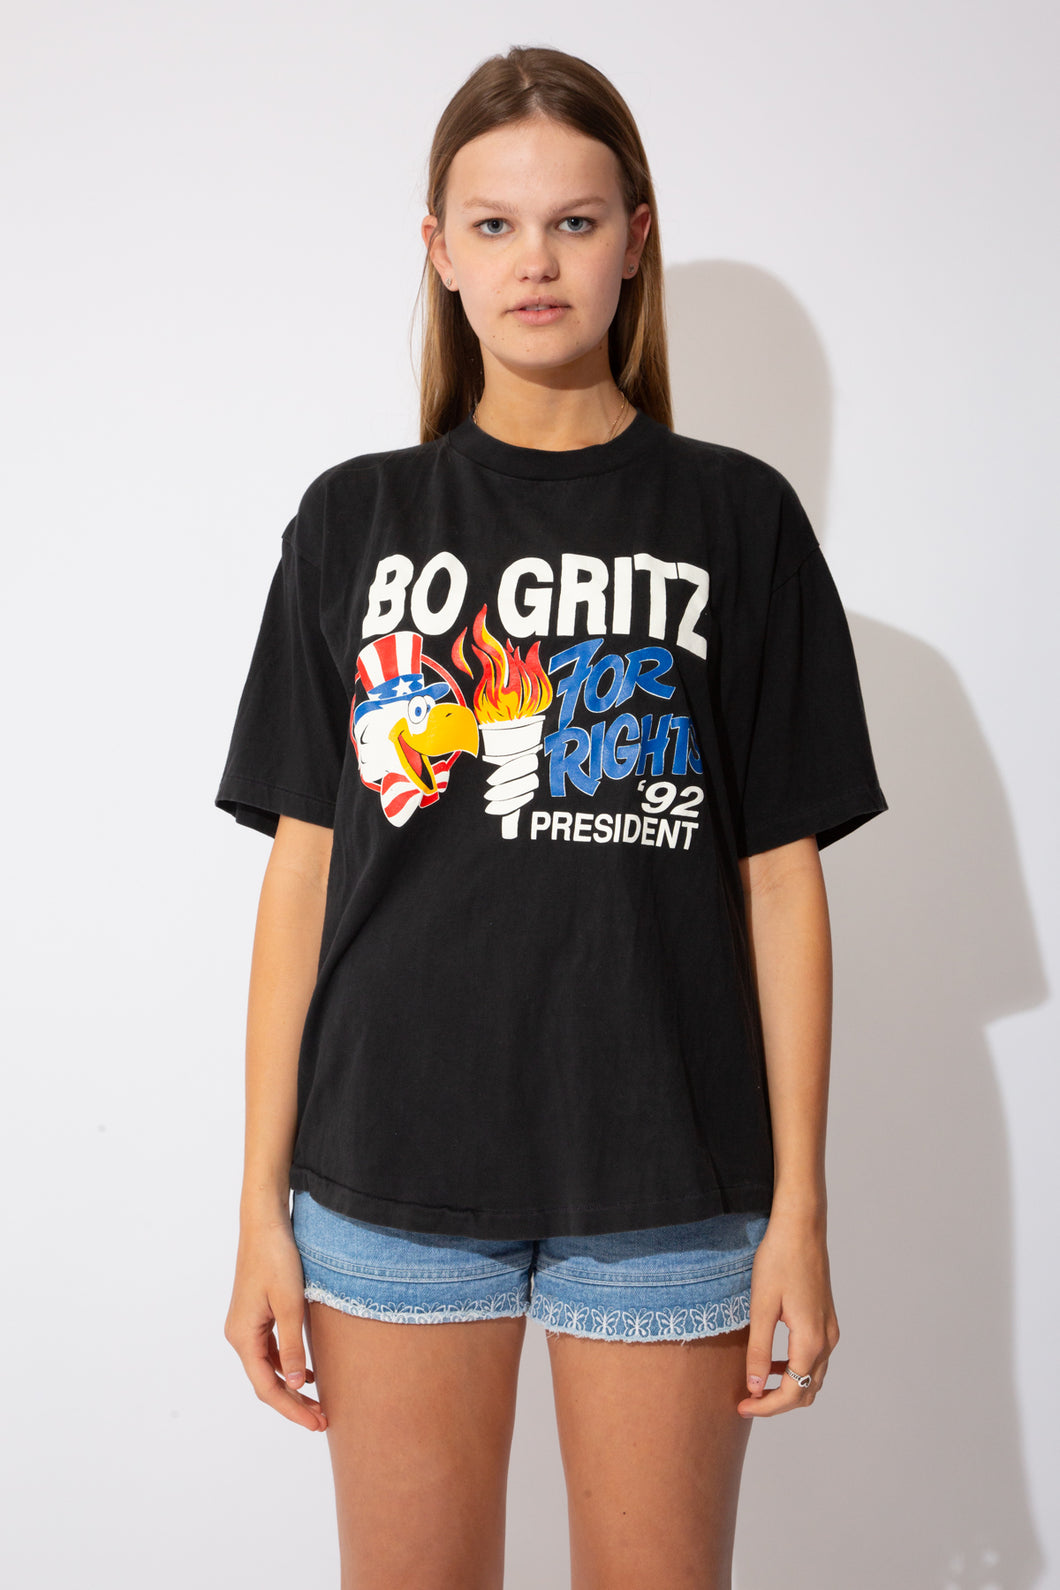 Black tee with Bo Gritz graphic on the front and an eagle holding a torch. On the back there is information about George Bush's new world order (which is clearly disagreed)